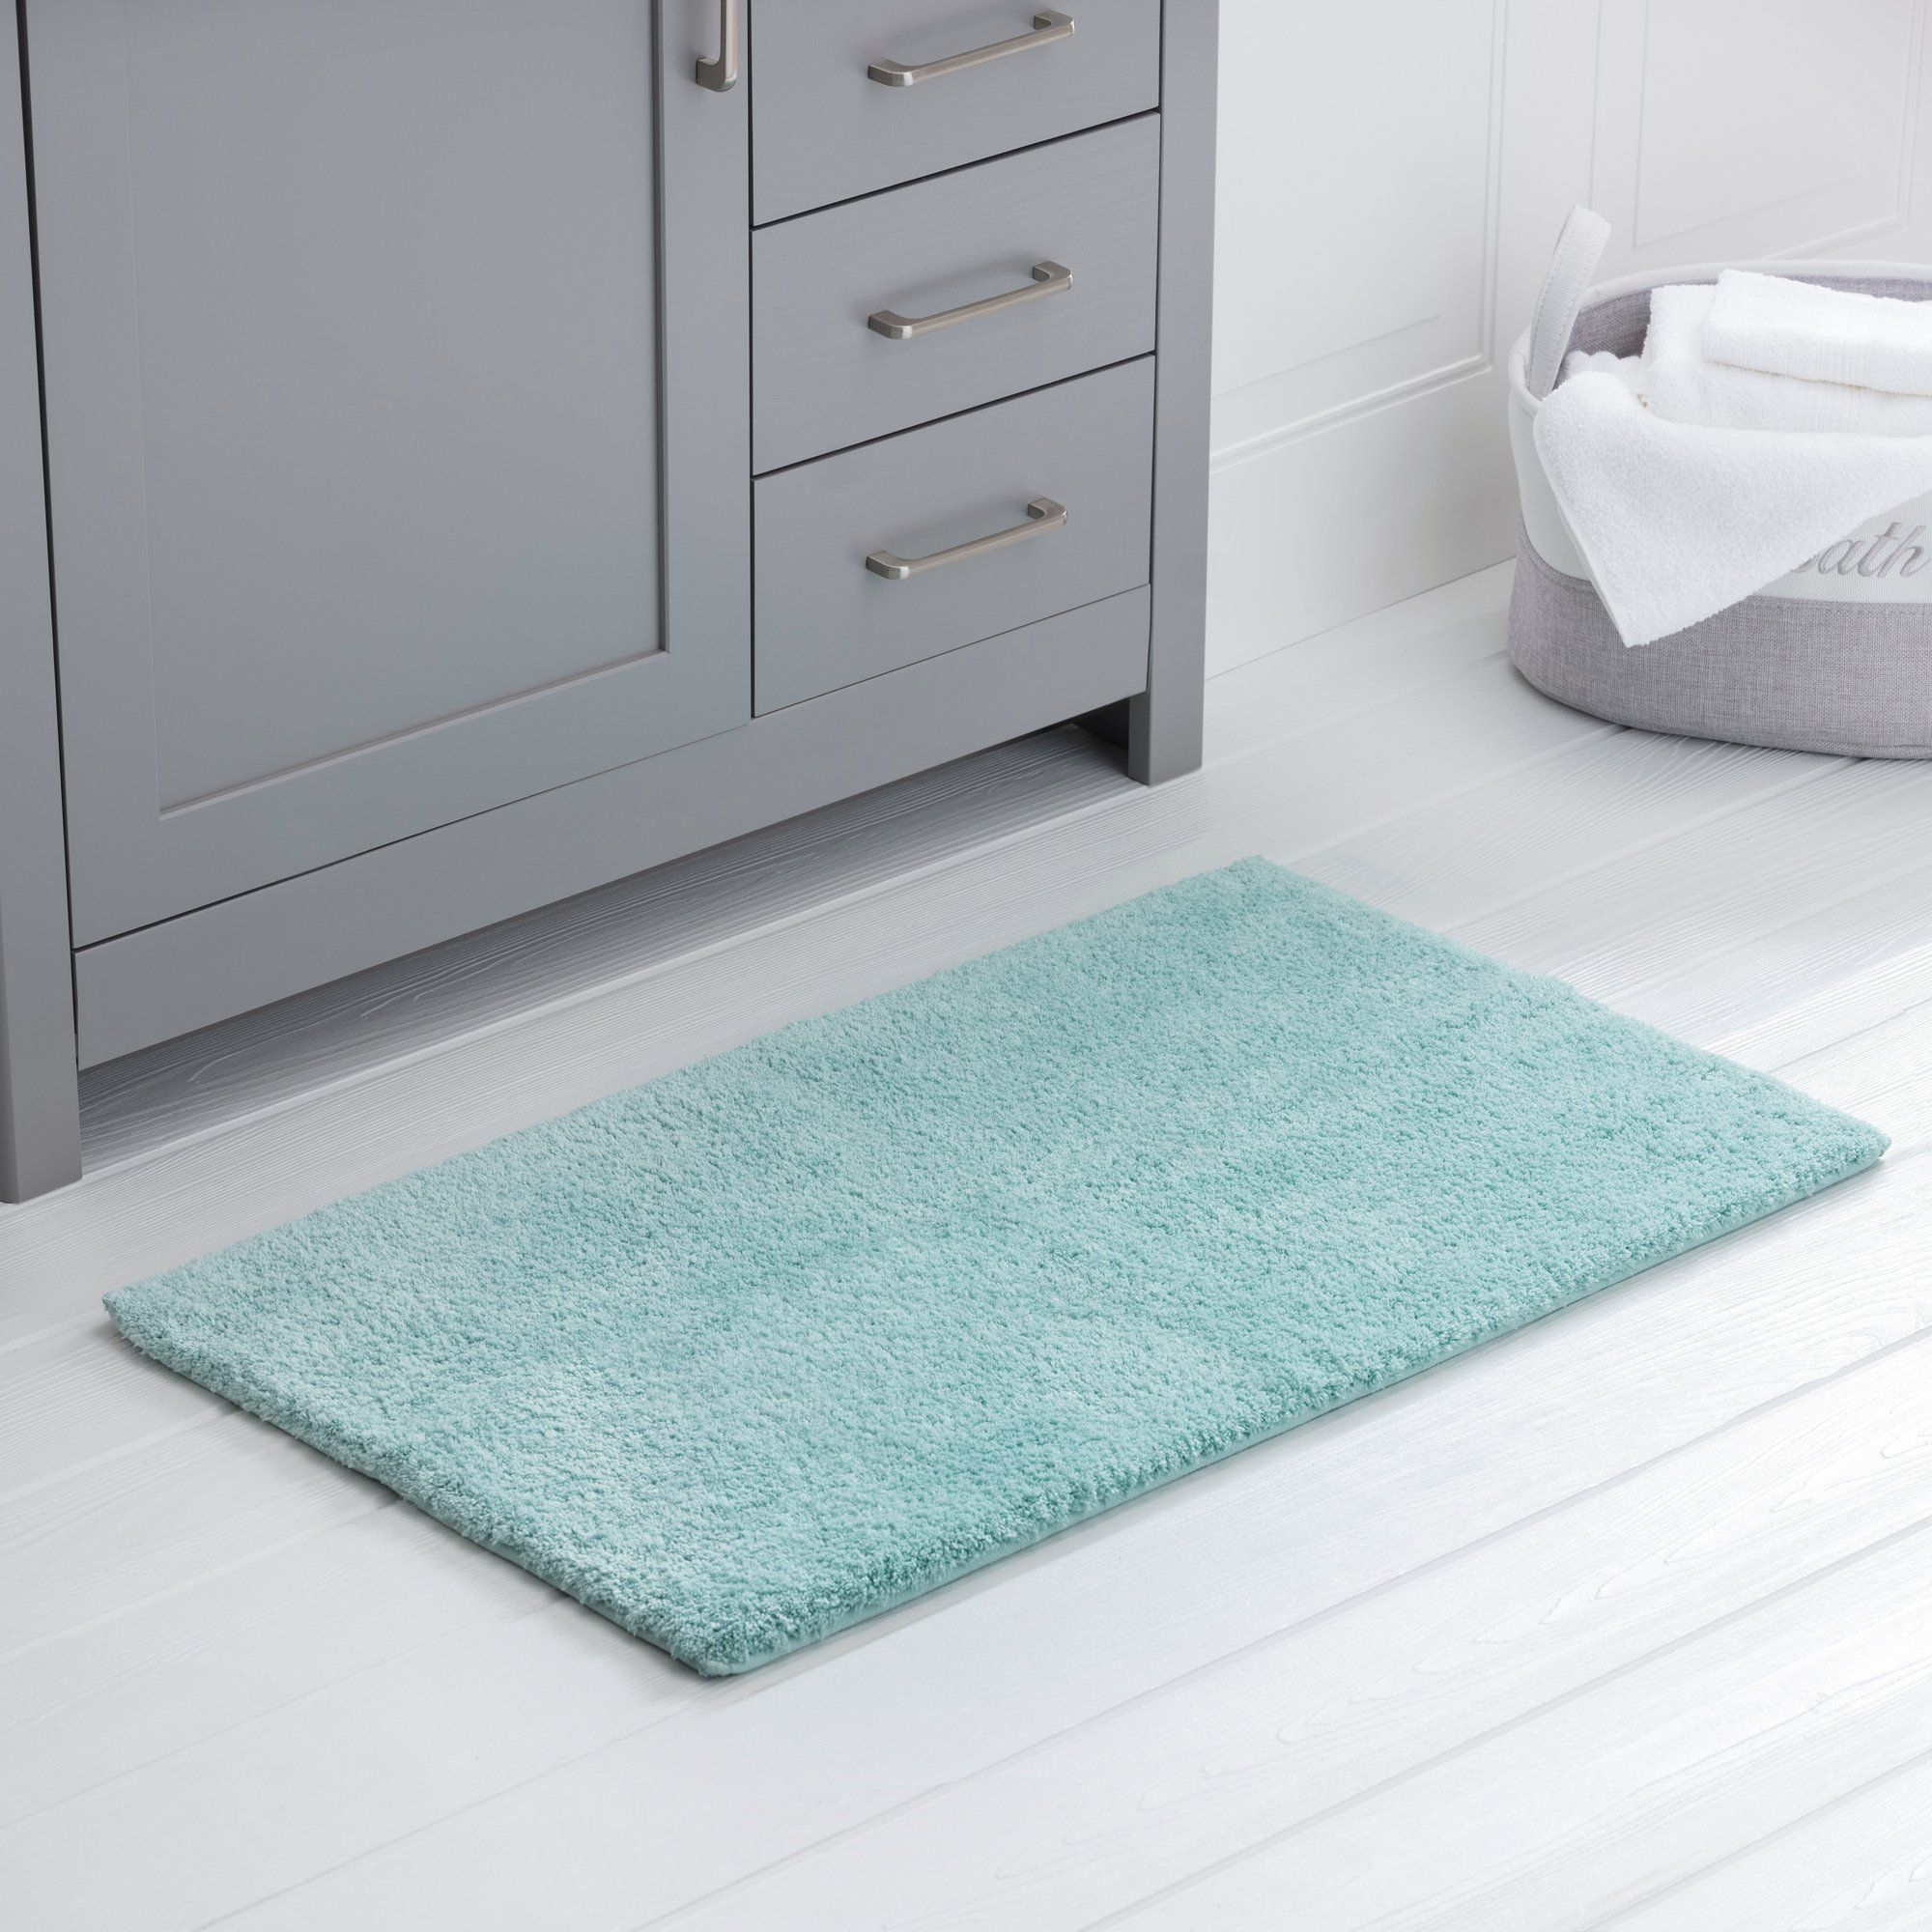 Better Homes And Gardens Thick And Plush Bath Rug 20 X 34 Grey Heather Garden Art Ideas Beautiful Garden In 2020 Plush Bath Rugs Better Homes And Gardens Bath Rug [ 2000 x 2000 Pixel ]